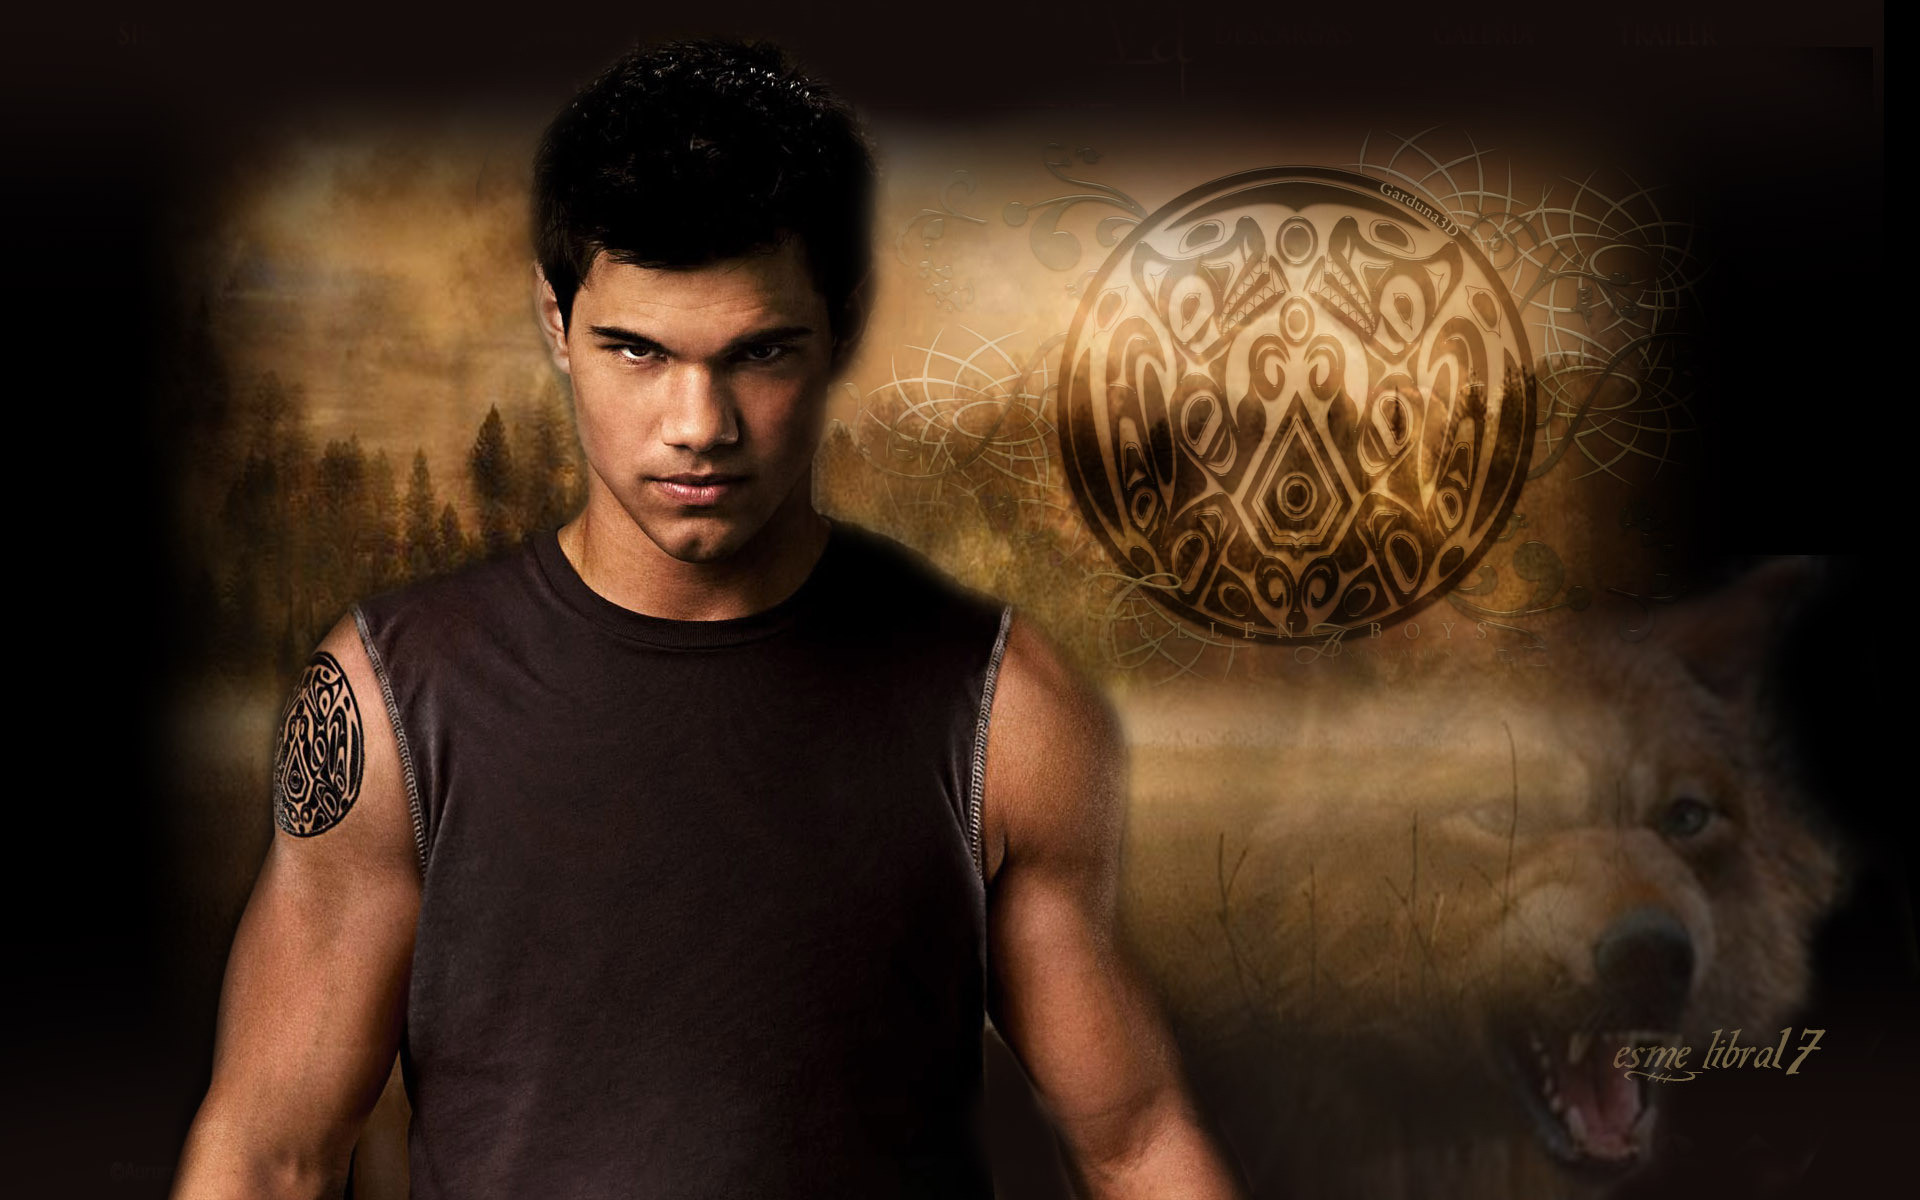 HD Wallpaper and background photos of jacob black for fans of twilight  Crepúsculo images.